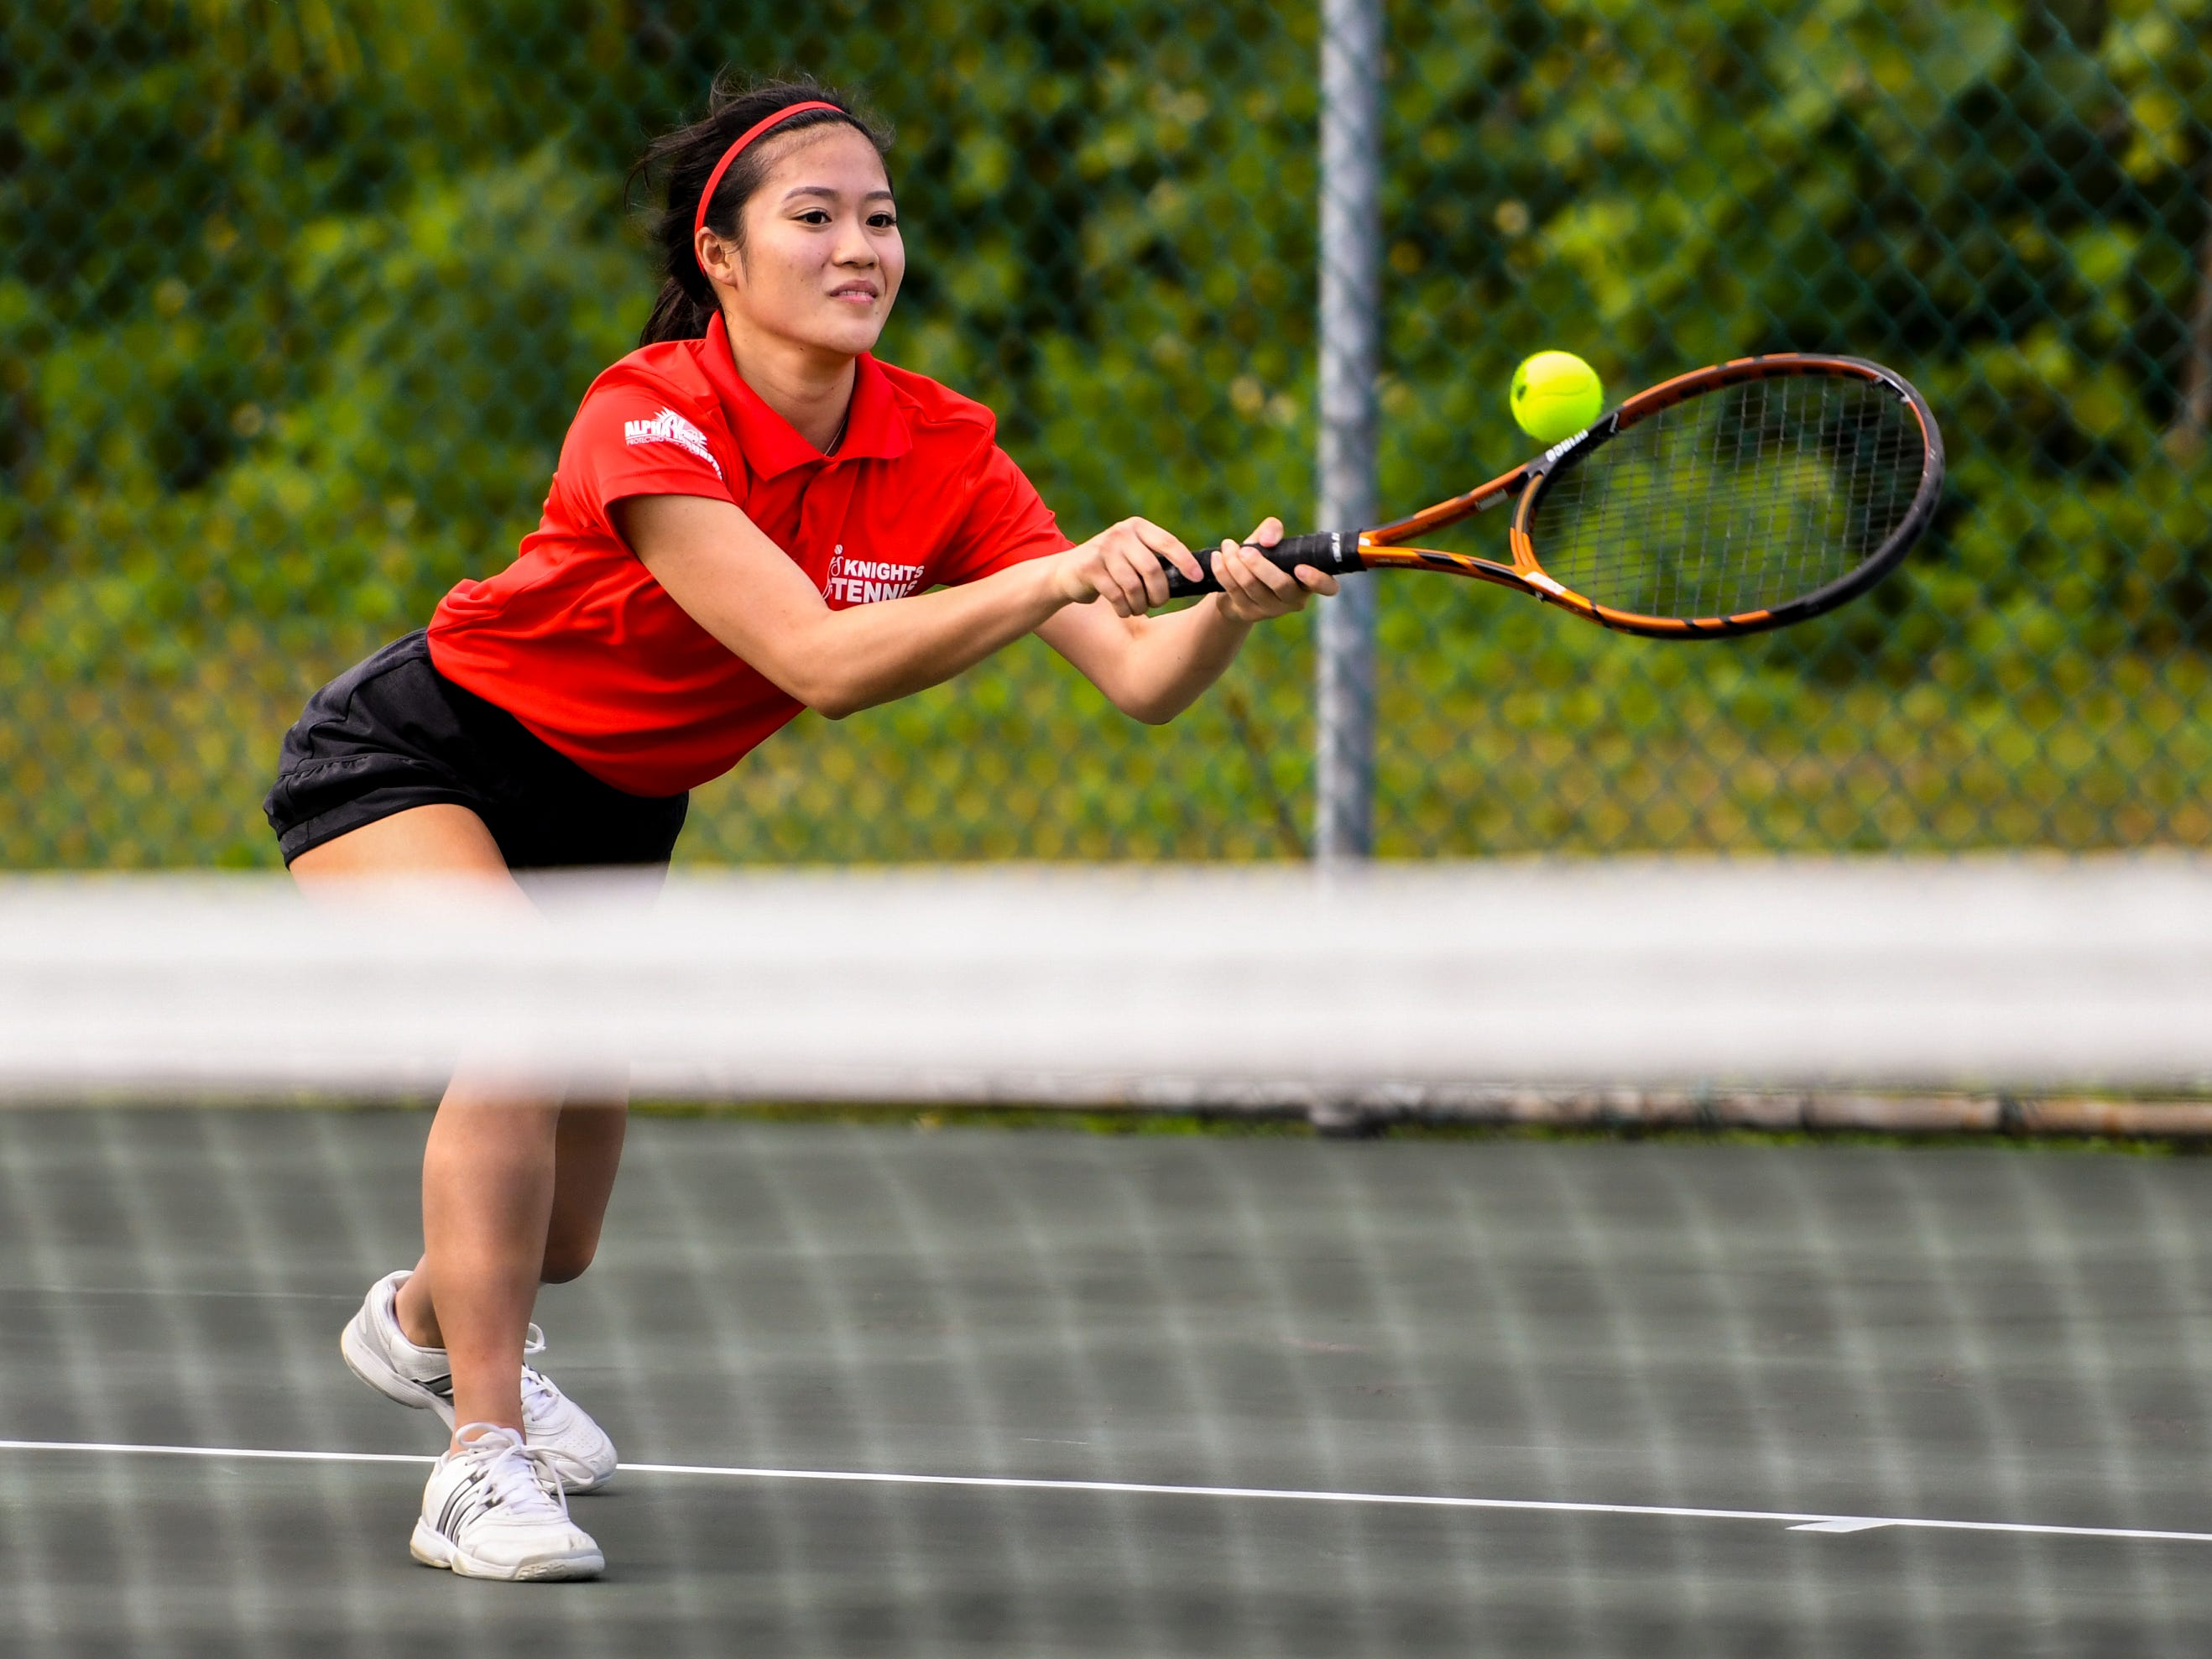 St. John's Knights' Ayaka Lin stretches out to return a volley during an Interscholastic Athletic Association of Guam tennis singles match against Academy of Our Lady Guam Cougars' Mika Alcantara at the Rick Ninete Tennis Center in Hagåtna on Thursday, Jan. 31, 2019.